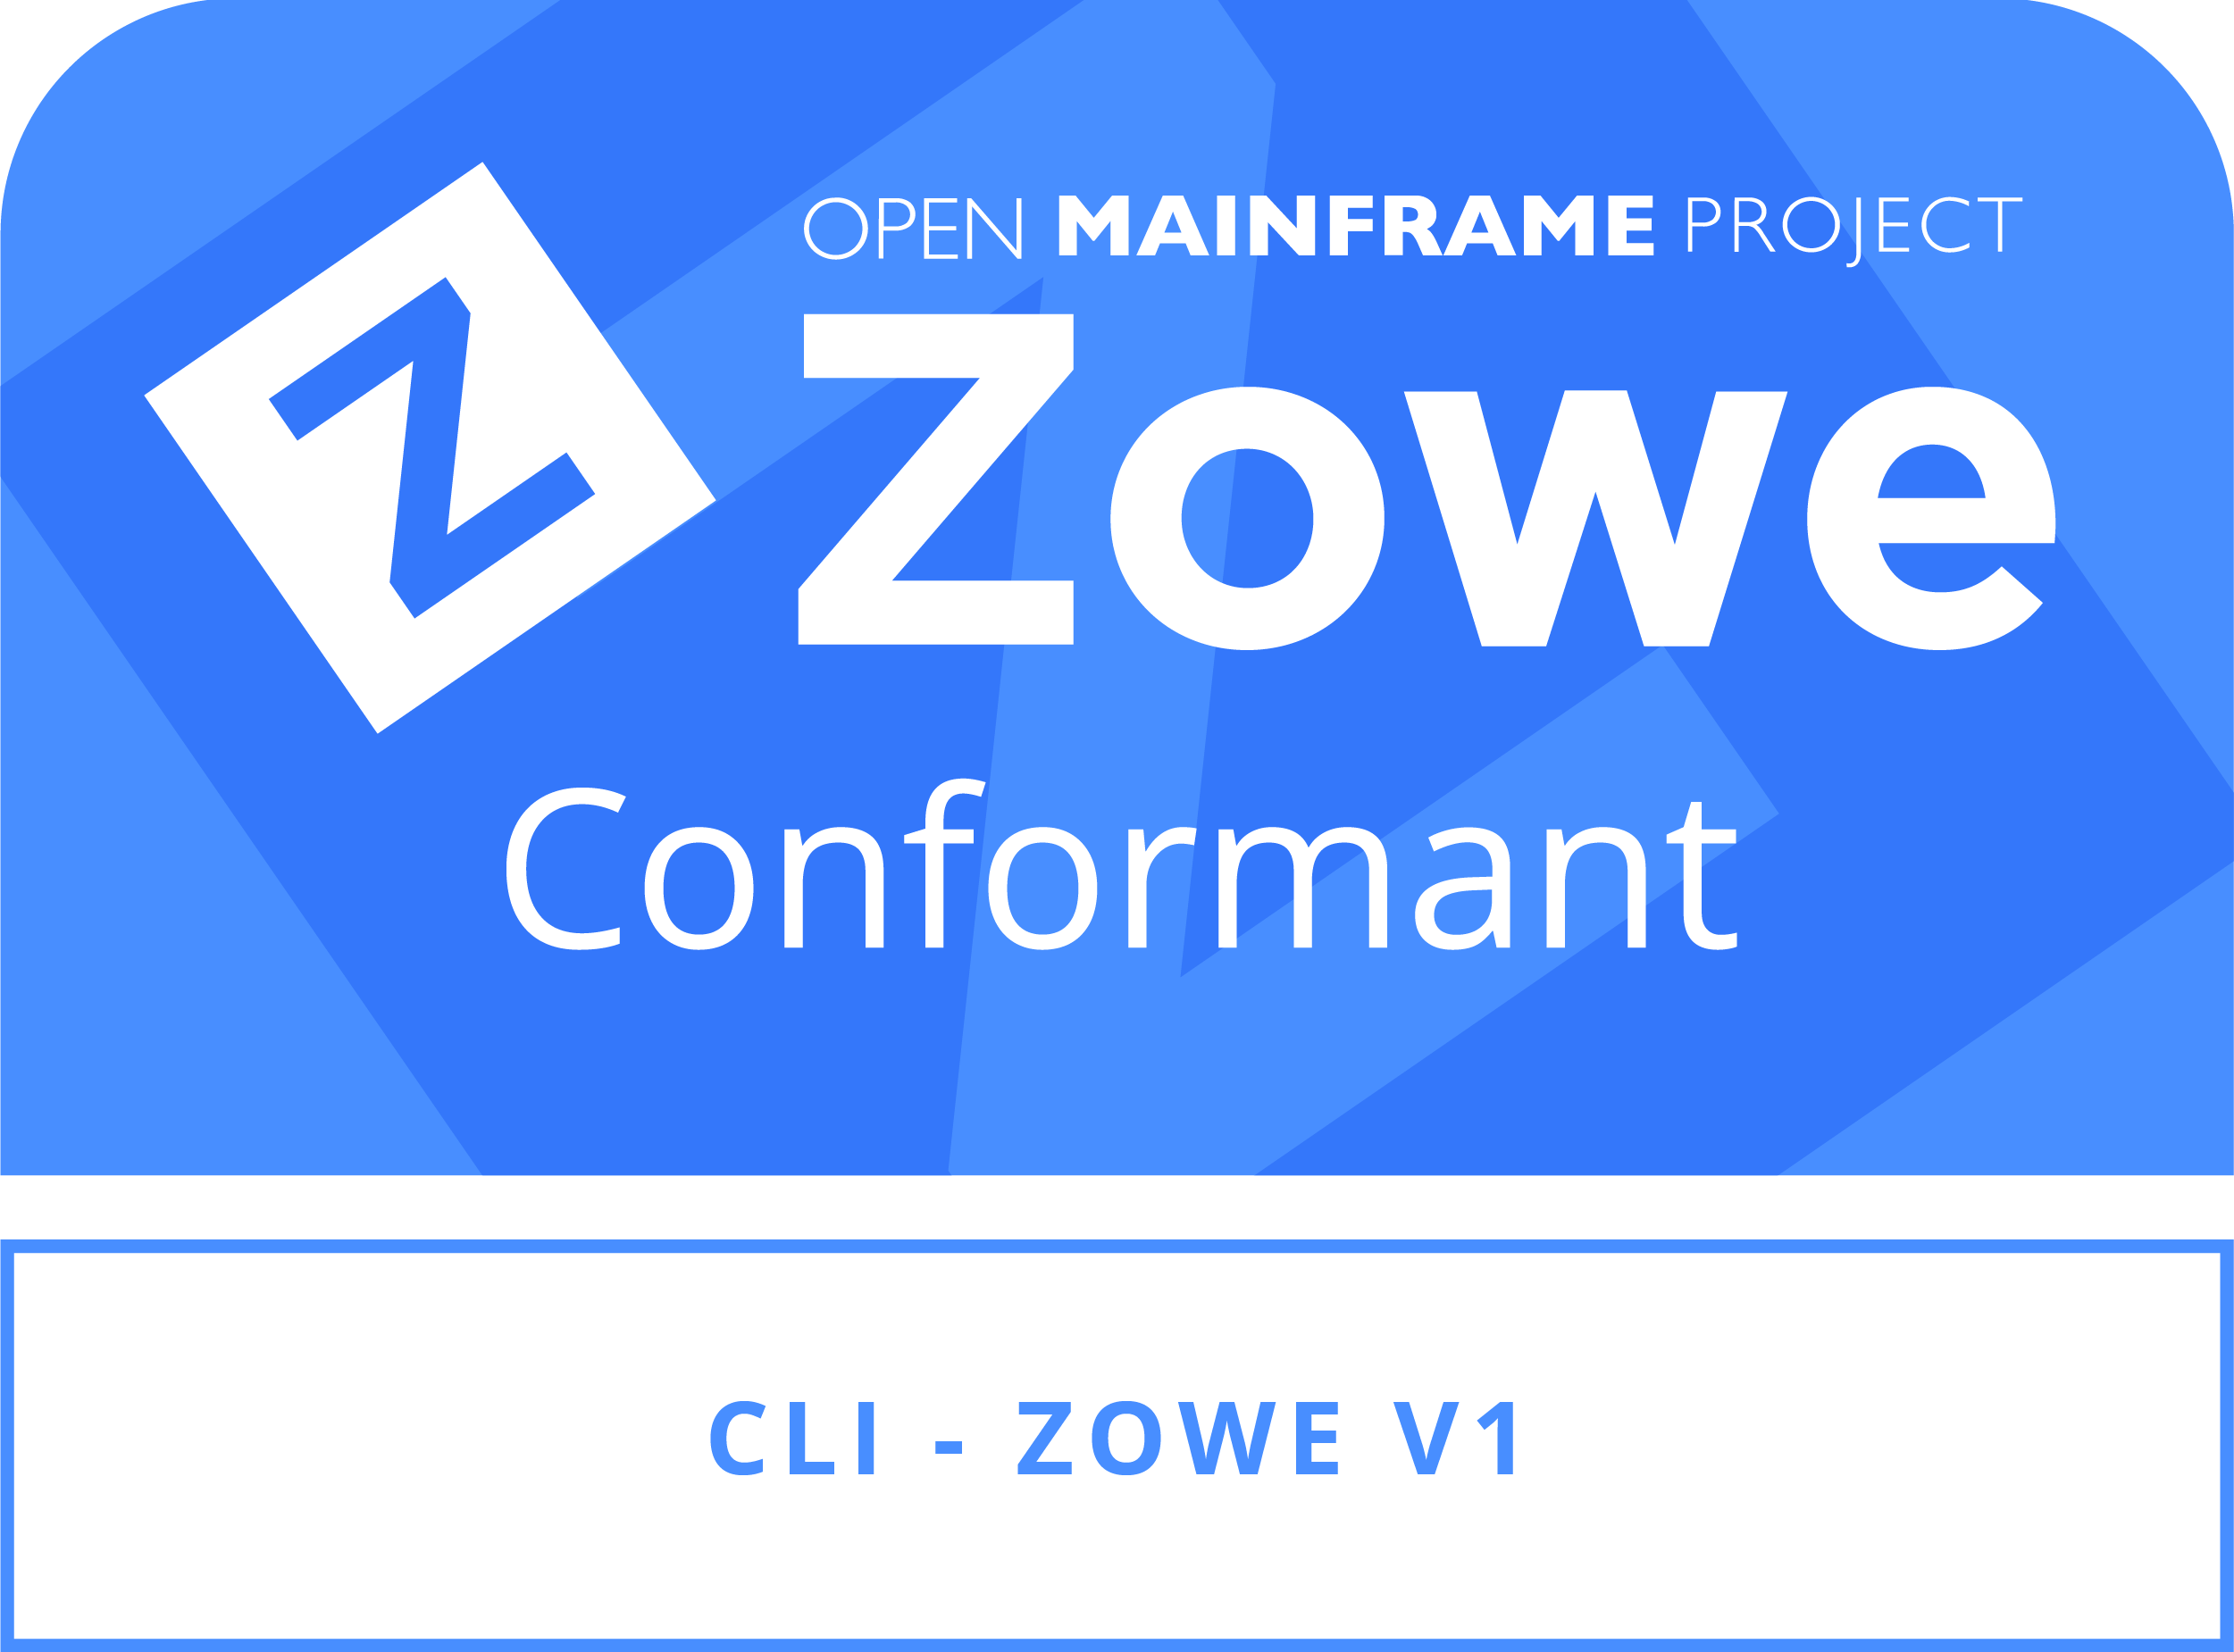 Zowe Conformant